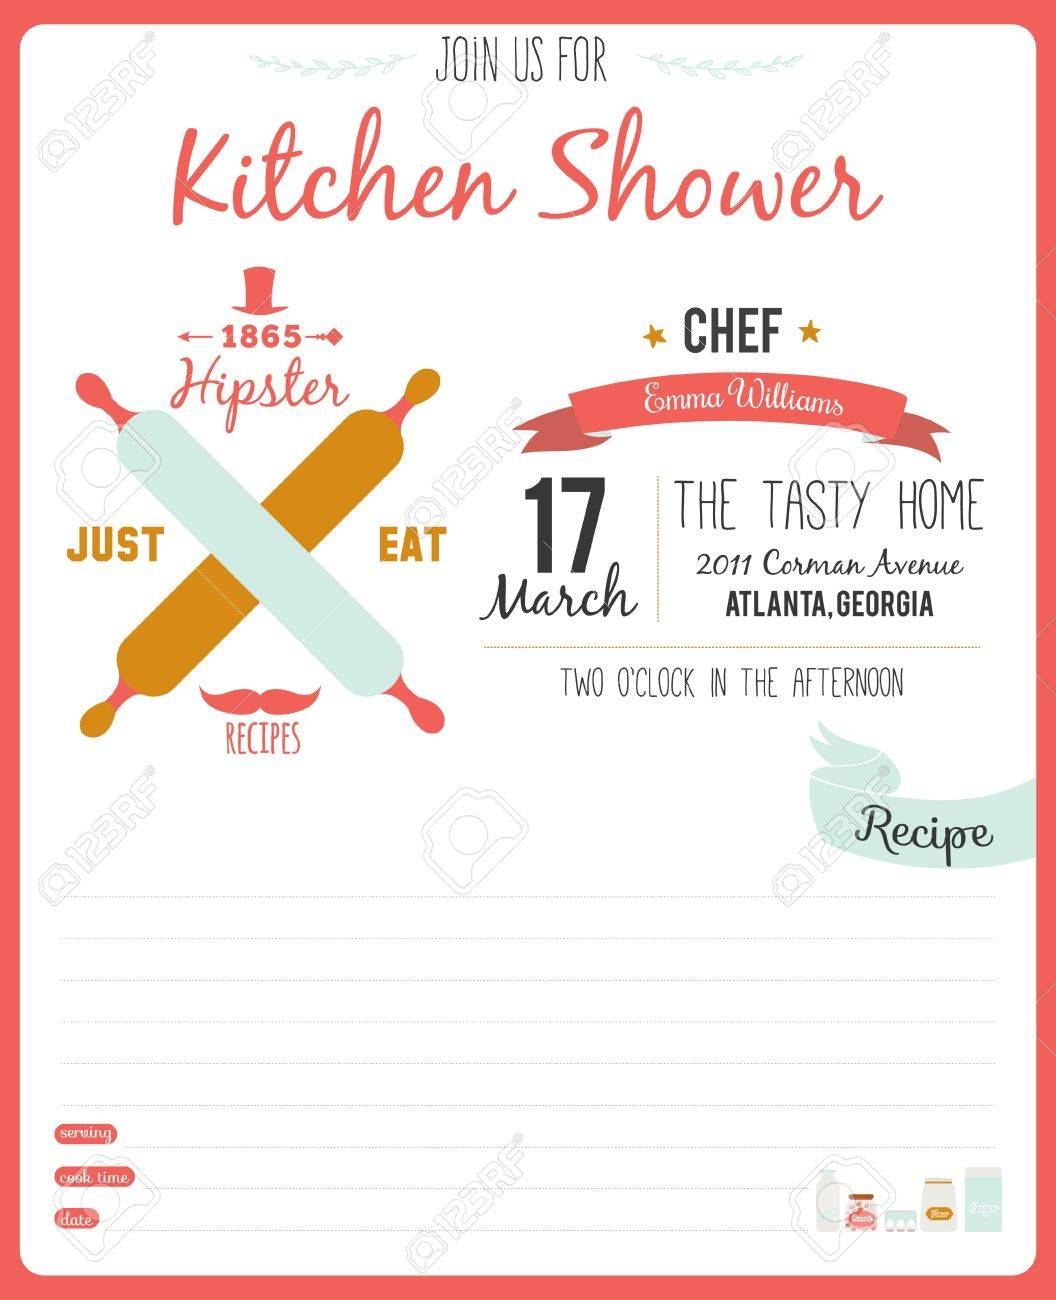 Kitchen Shower Recipe Card In Hipster Style For Restaurant And Cafe Invitation